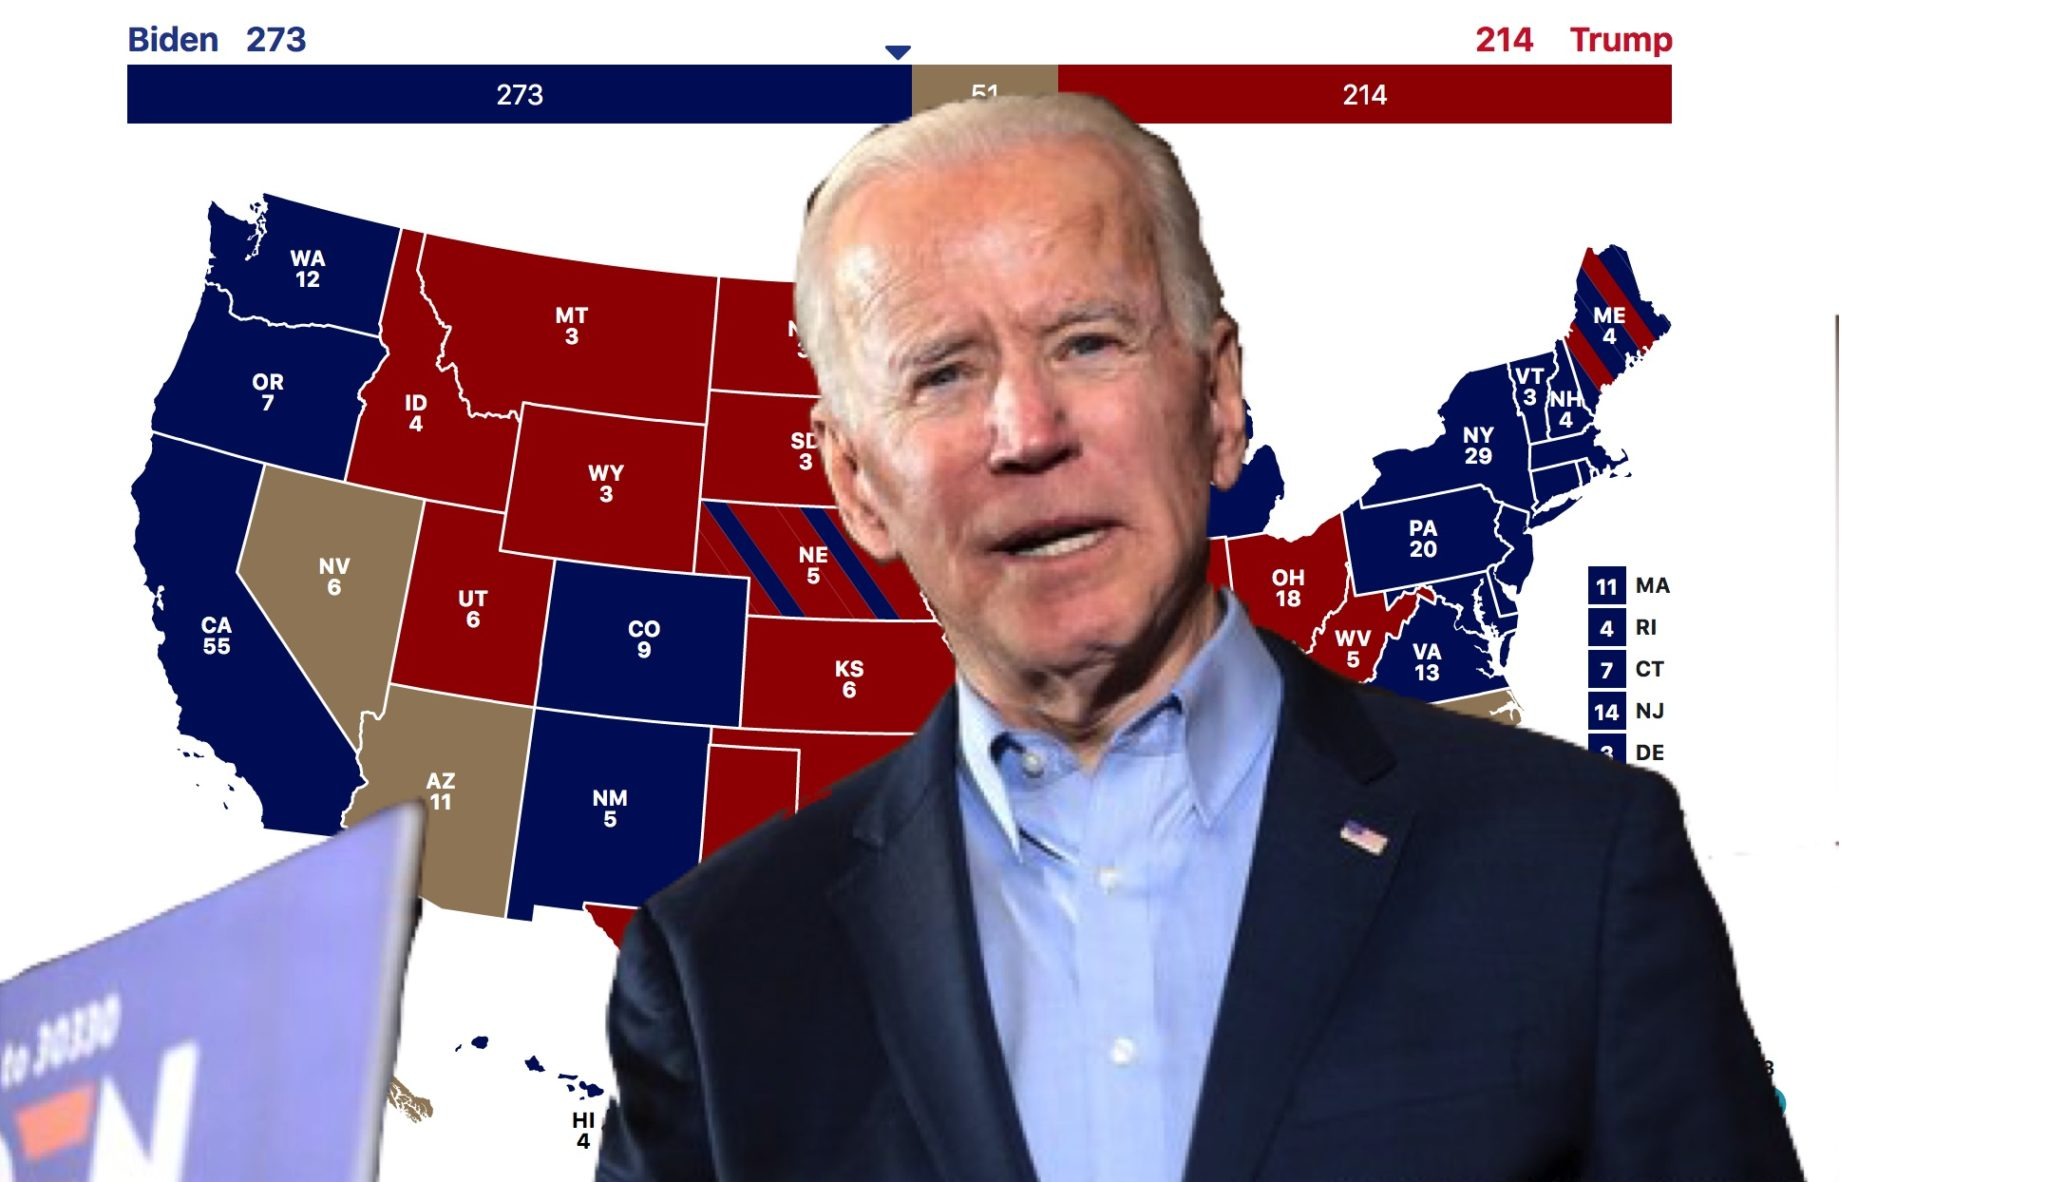 biden-map-scaled.jpg